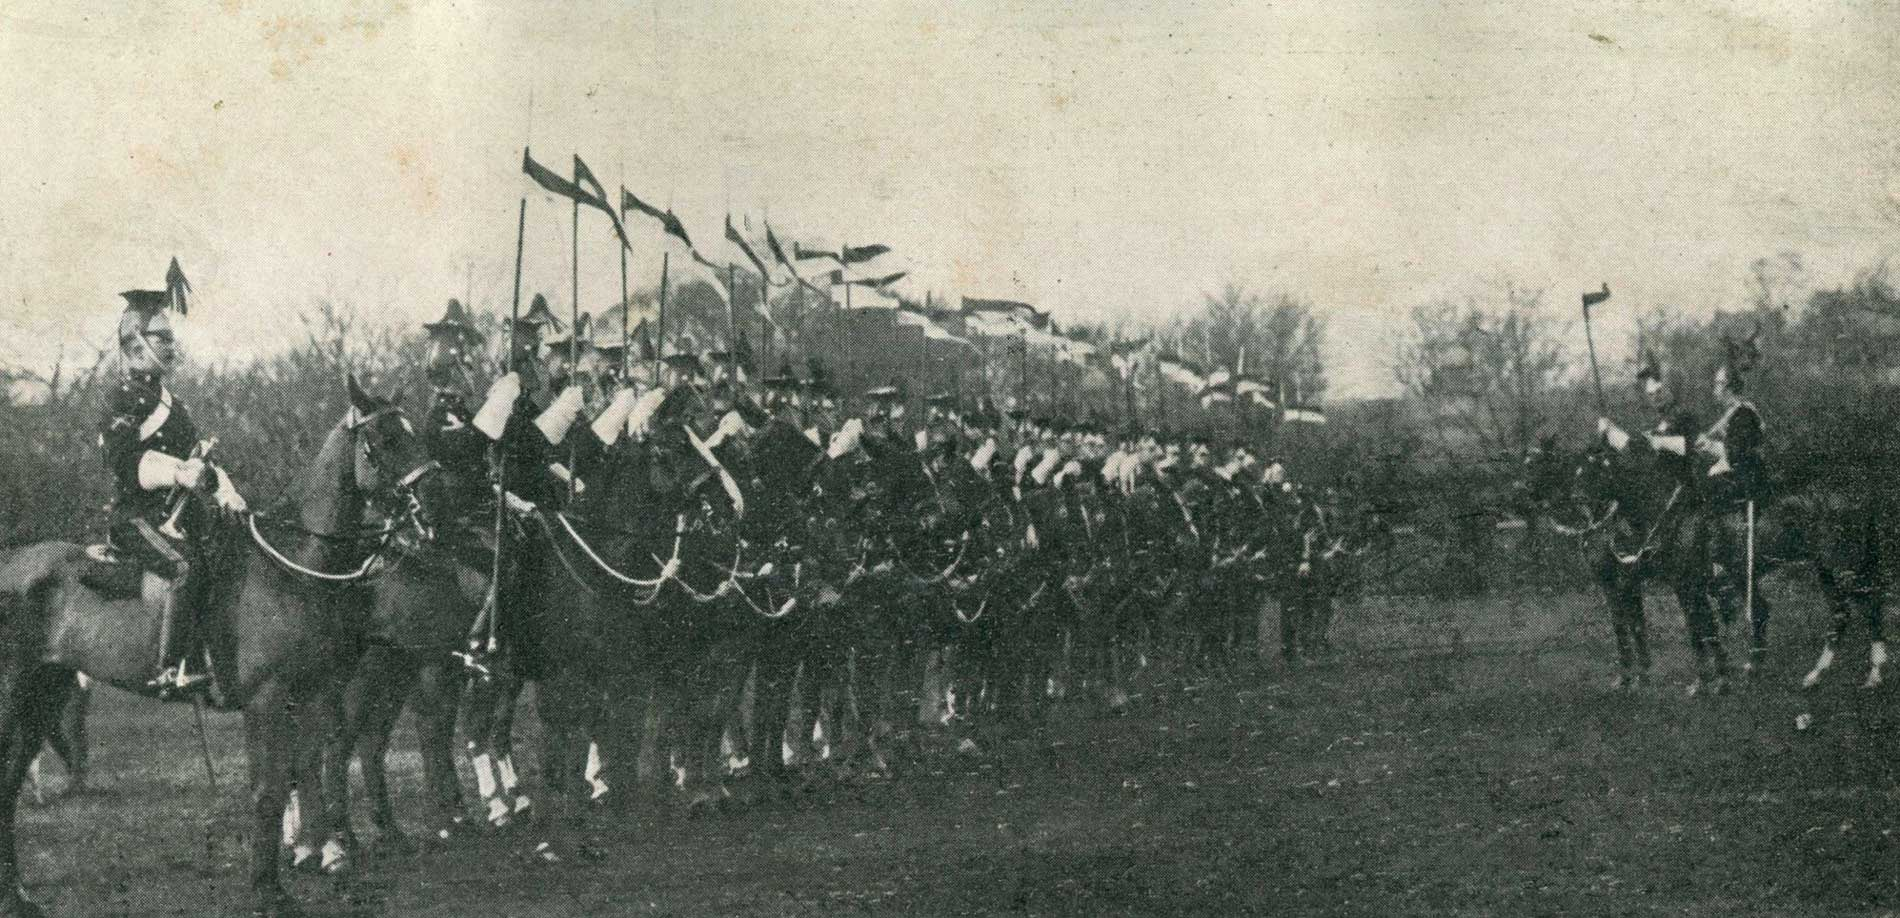 A troop of the 5th Royal Irish Lancers, one of the regiments of the 3rd Cavalry Brigade, which Brigadier-General Gough commands.